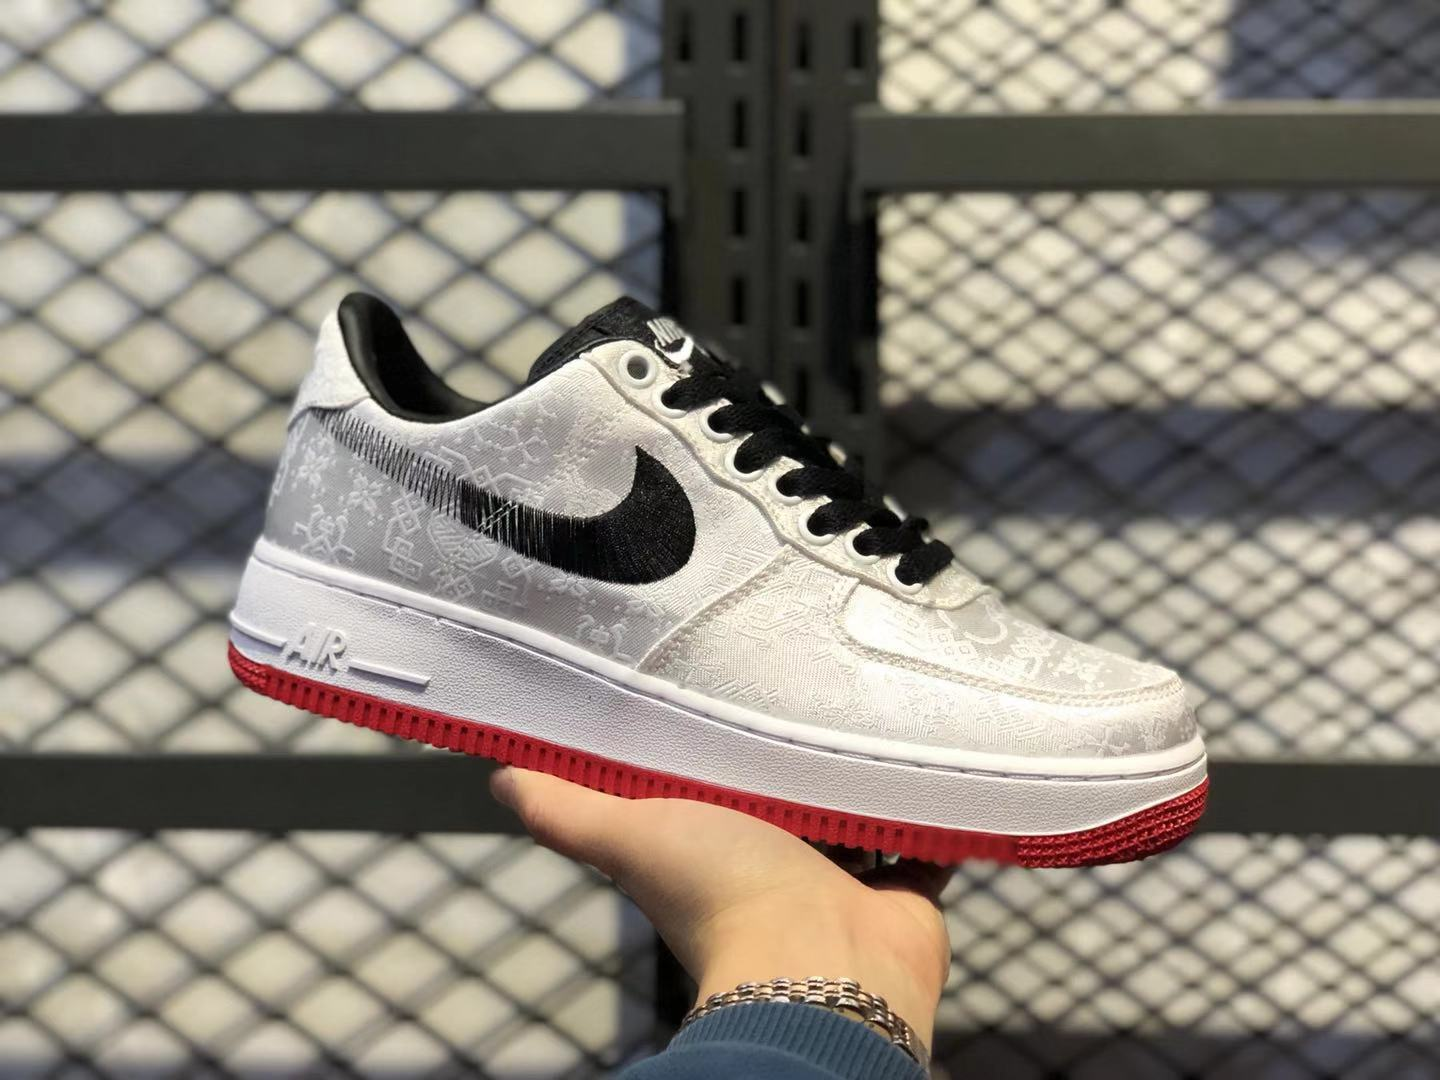 Nike Air Force 1'07 Low White/Black-Solar Red Life Classic Shoes On Sale